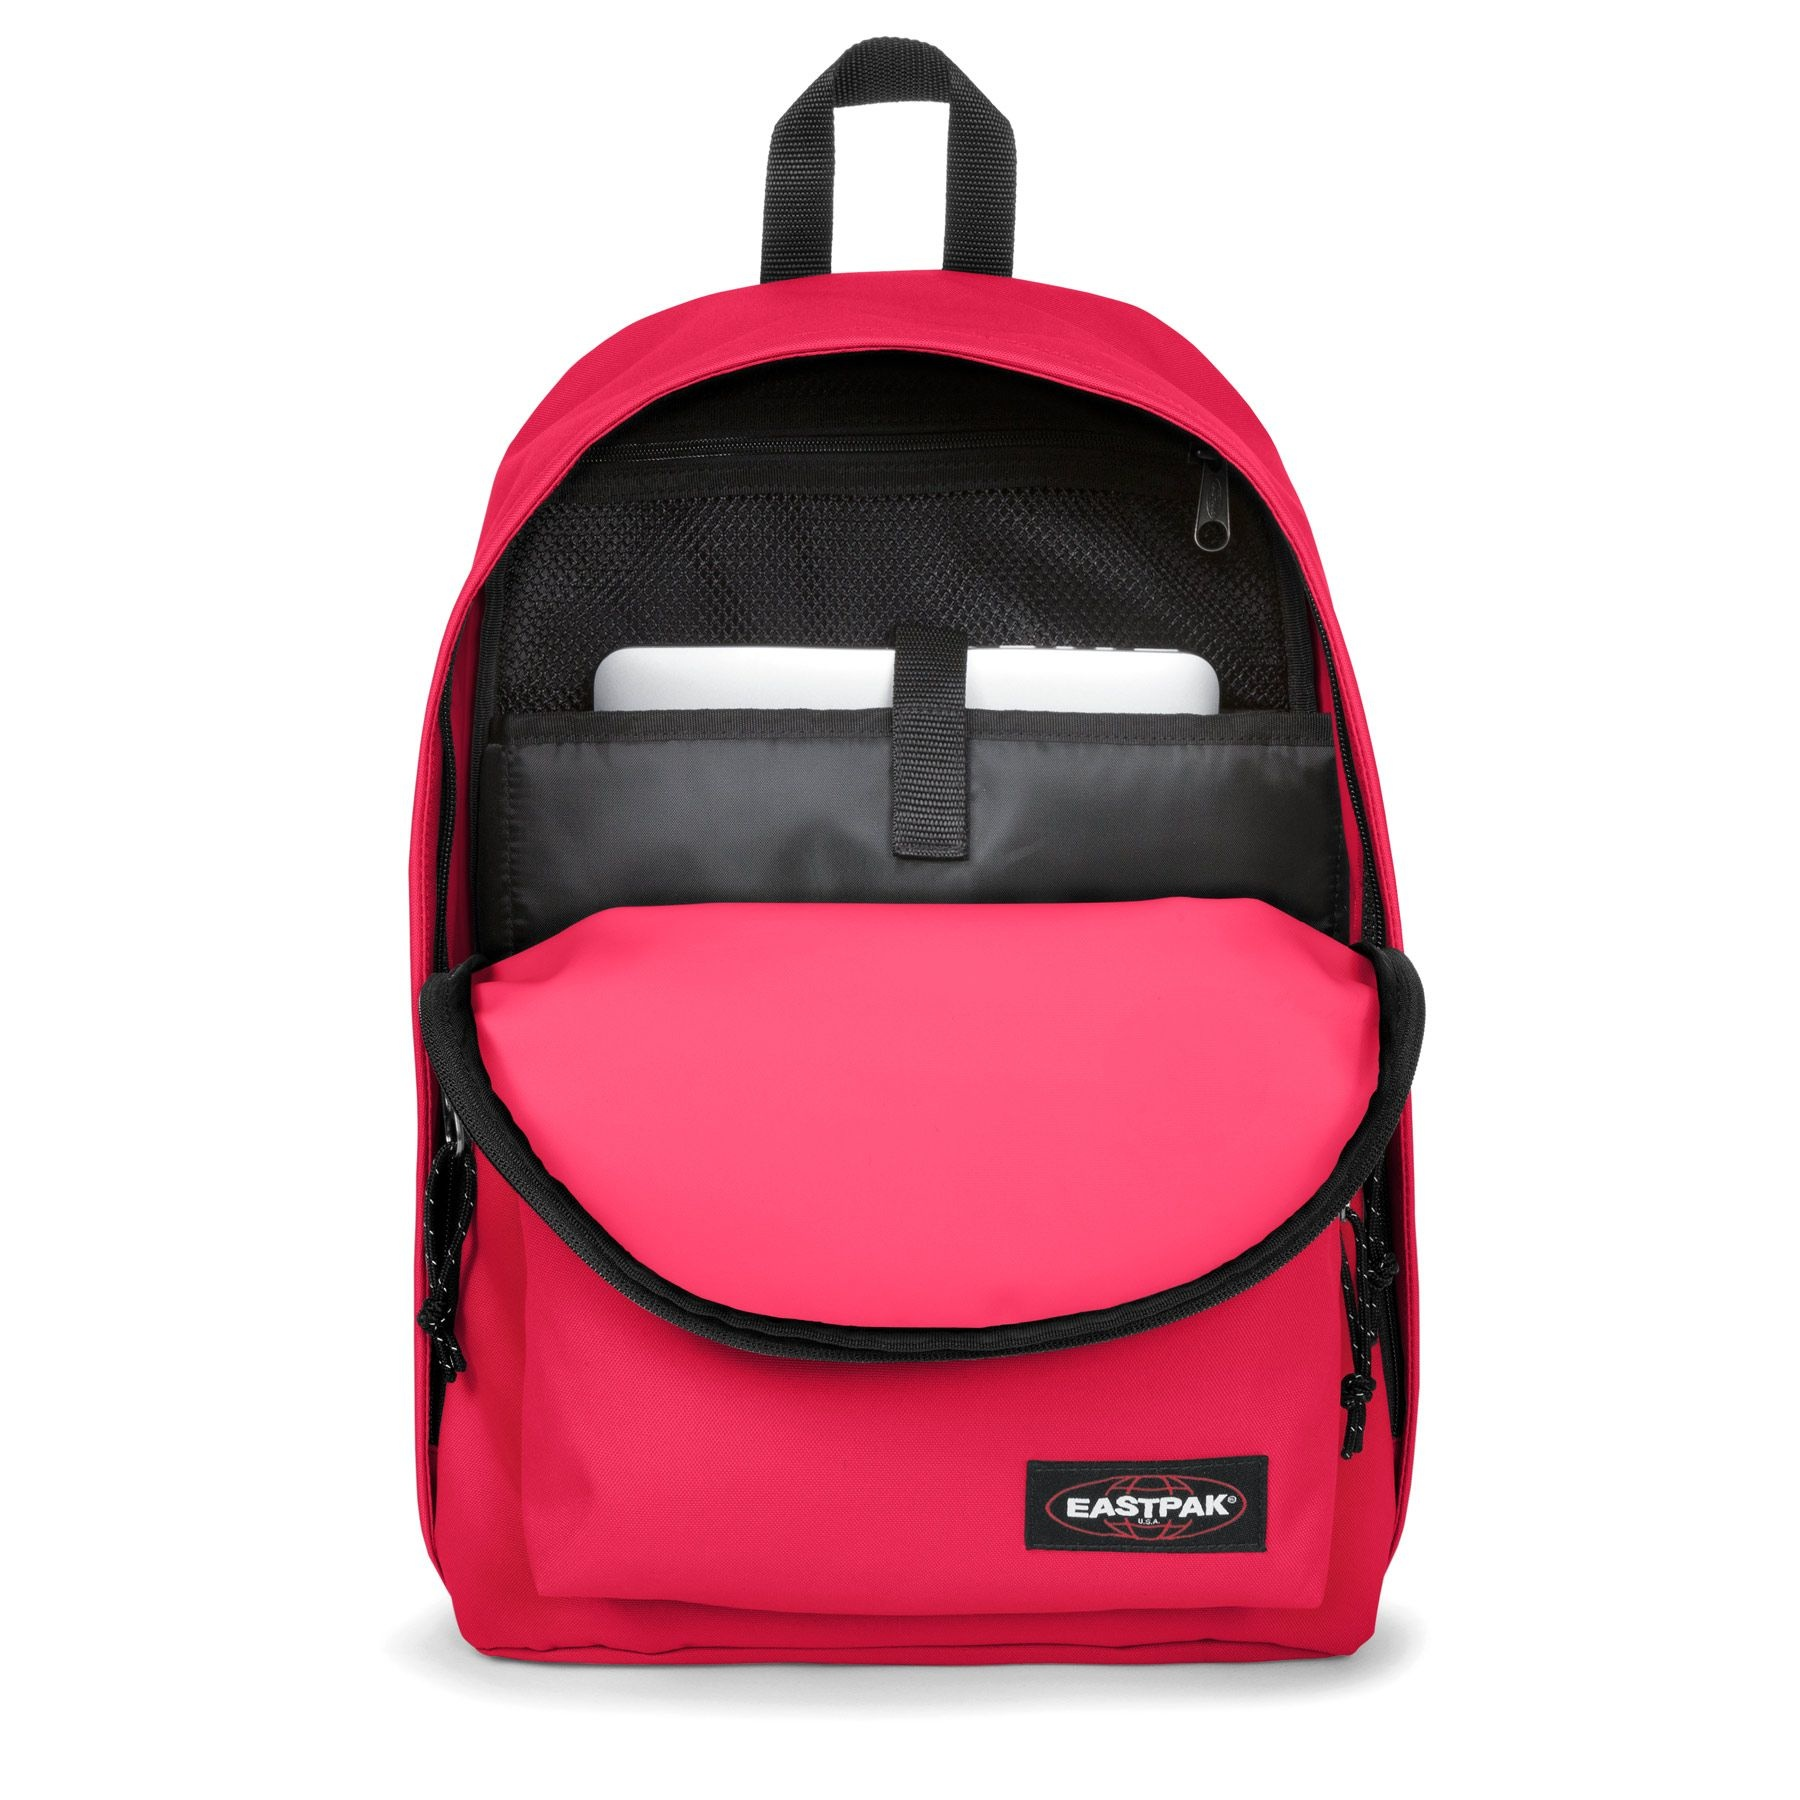 Eastpak Eastpak Out Of Office Hibiscus Pink 15 inch laptop rugtas